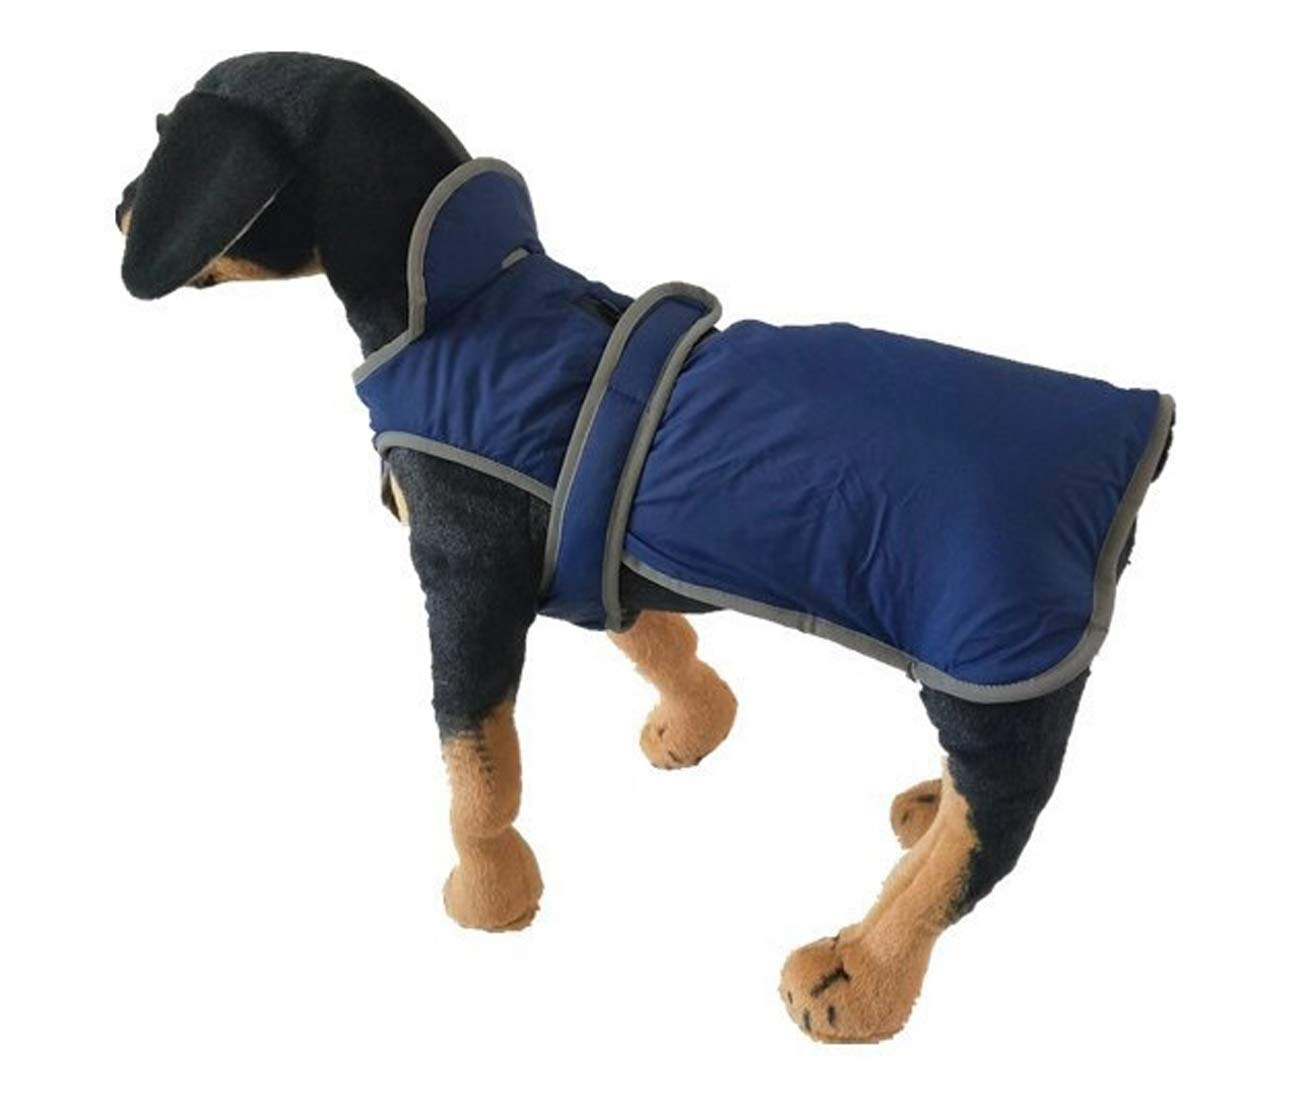 Navy X-Large Navy X-Large GabeFish Pets Fleece Coats Small Medium Large Breeds Dogs Warm Vests Jackets with Harness Zipper Navy X-Large